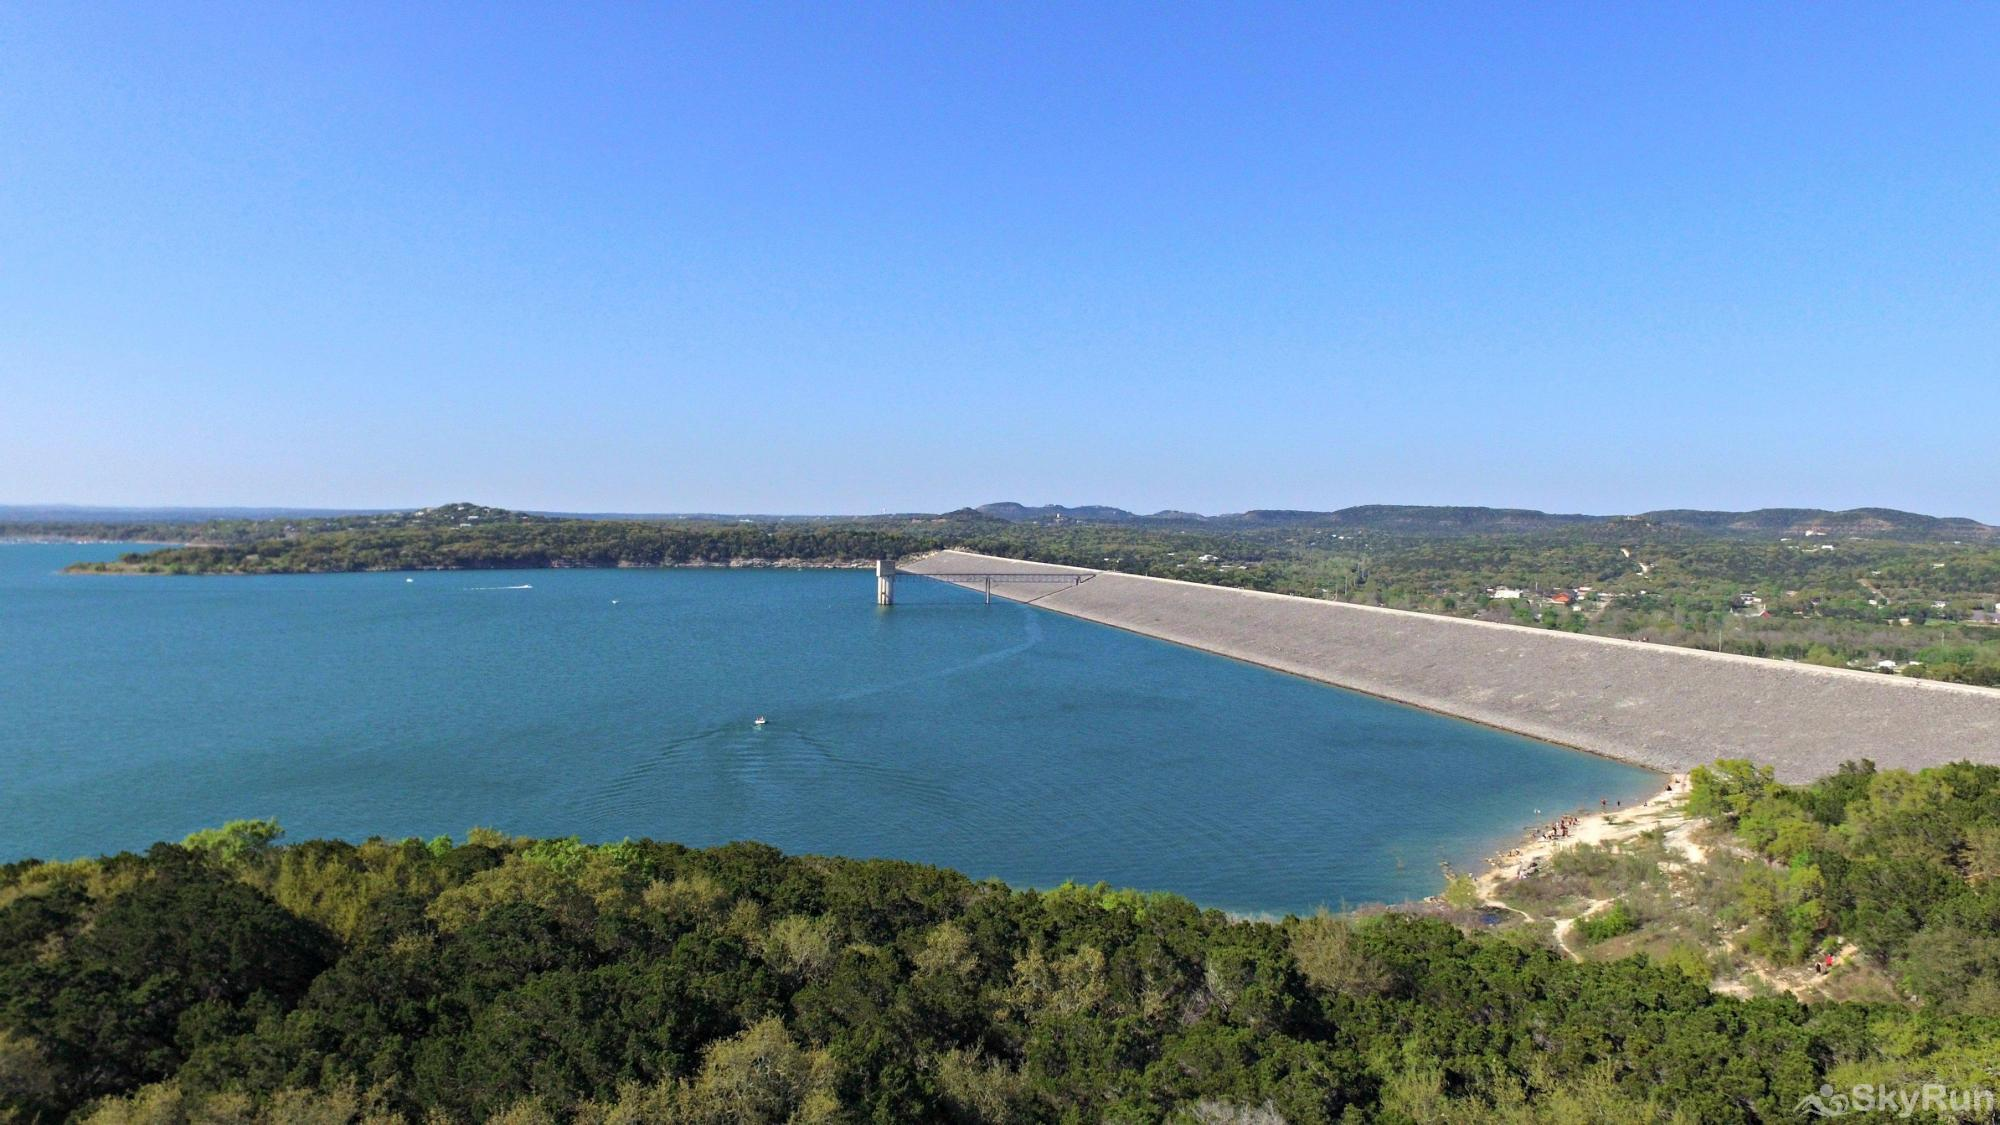 CASA DEL LAGO Walk Across Scenic Canyon Dam, 5 Miles from the Home